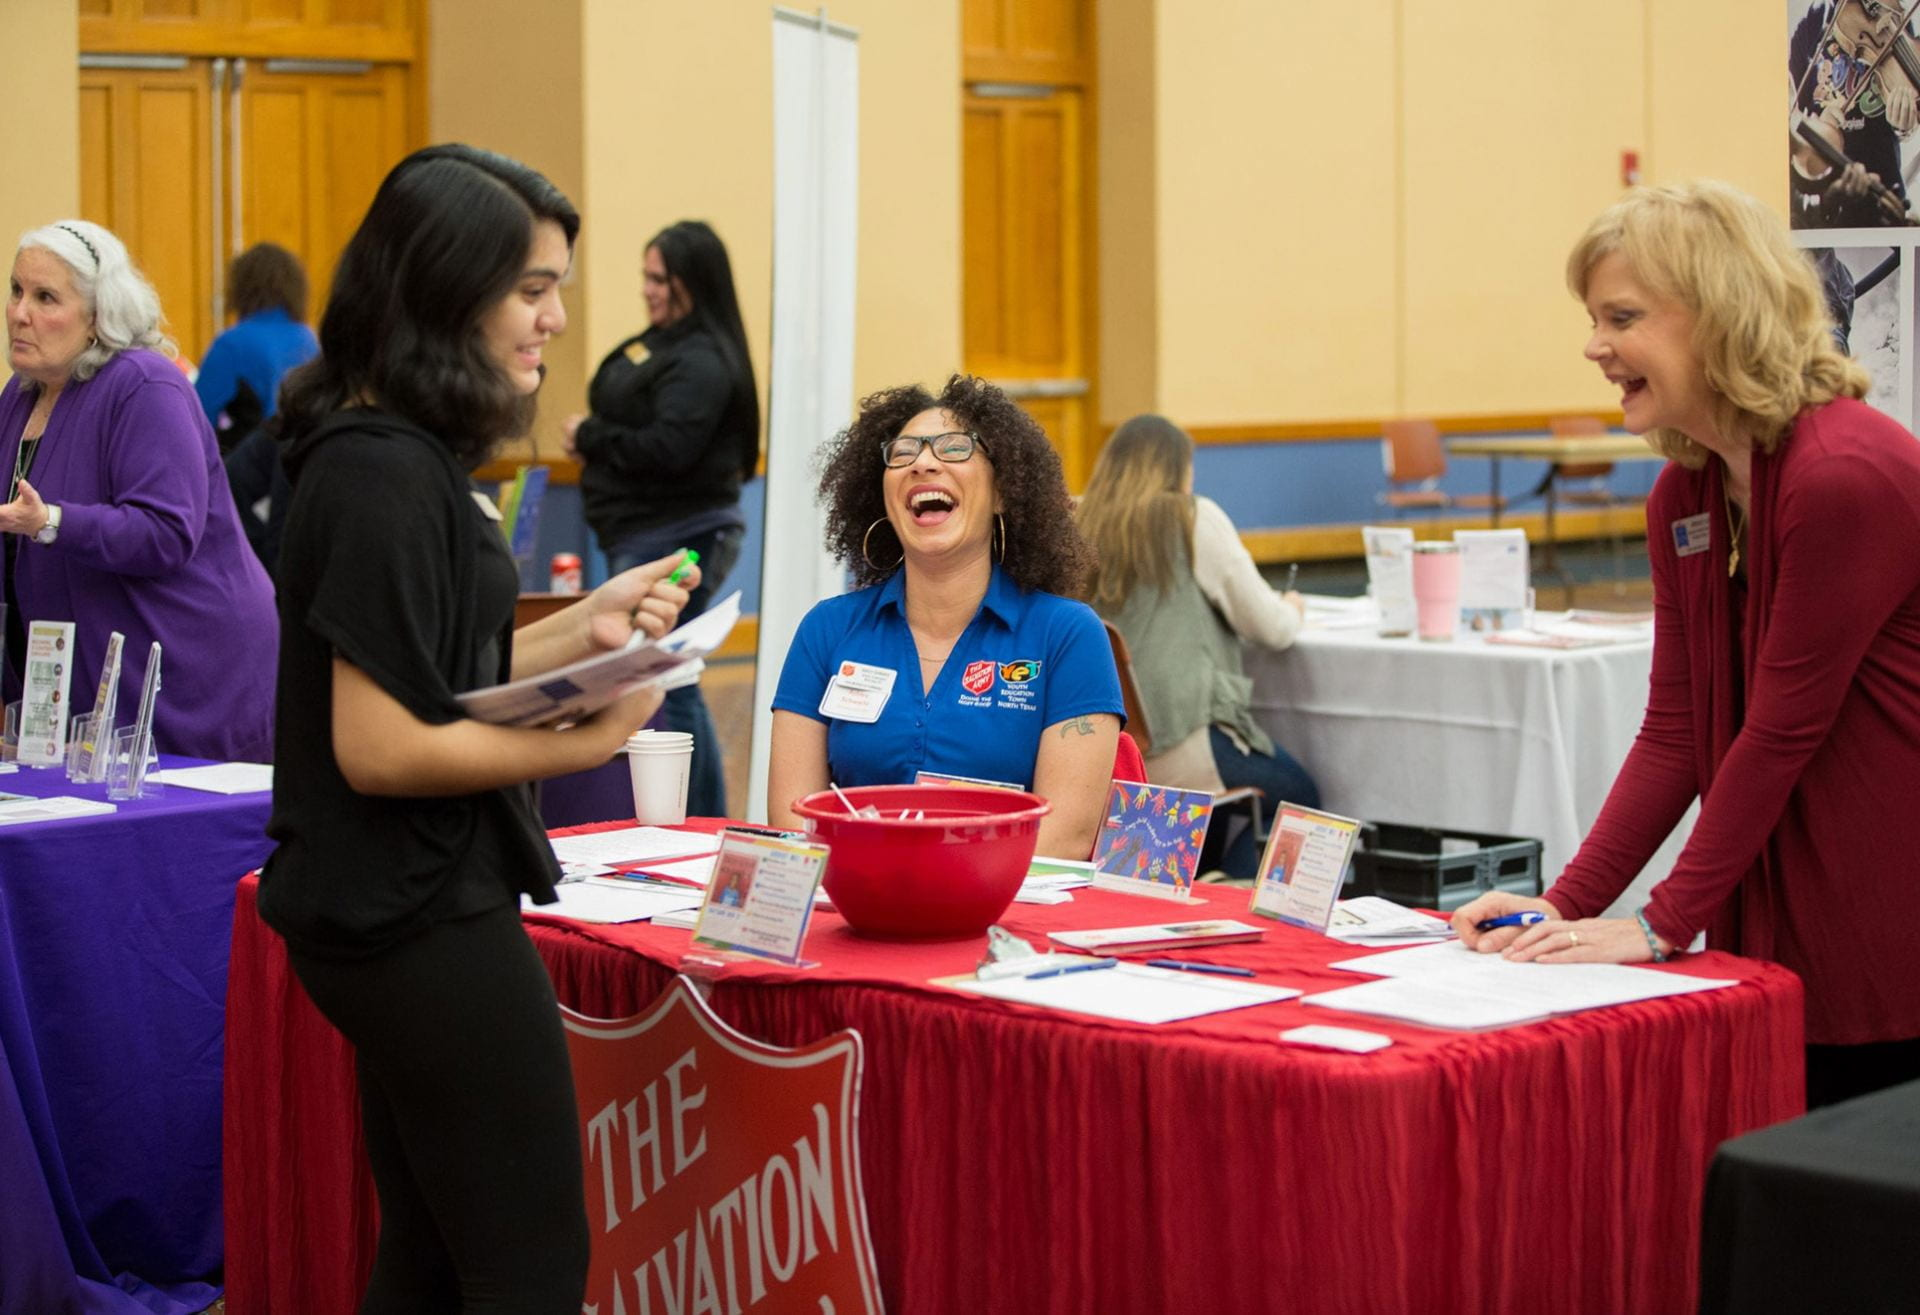 Three event attendees share a laugh as they discuss the company they represent.